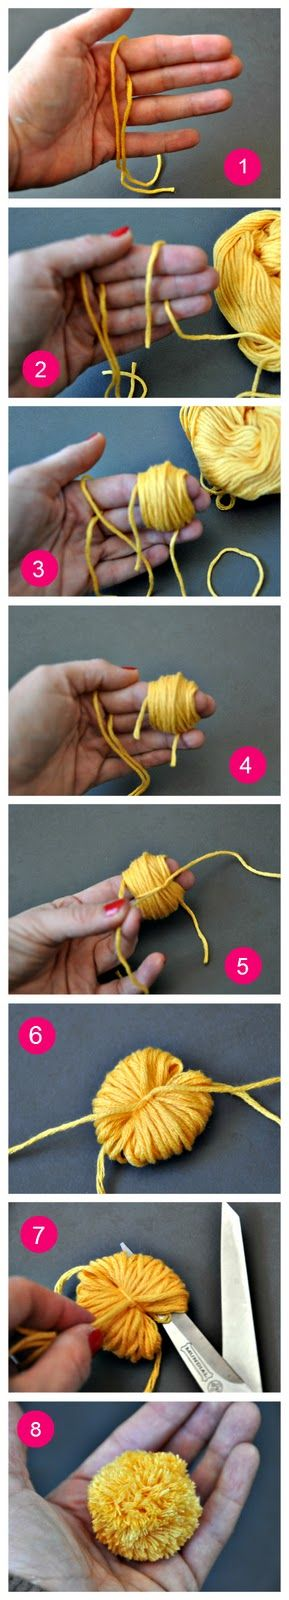 I'm definitely making these for toys for our cat. Or to throw at people when I have road rage.